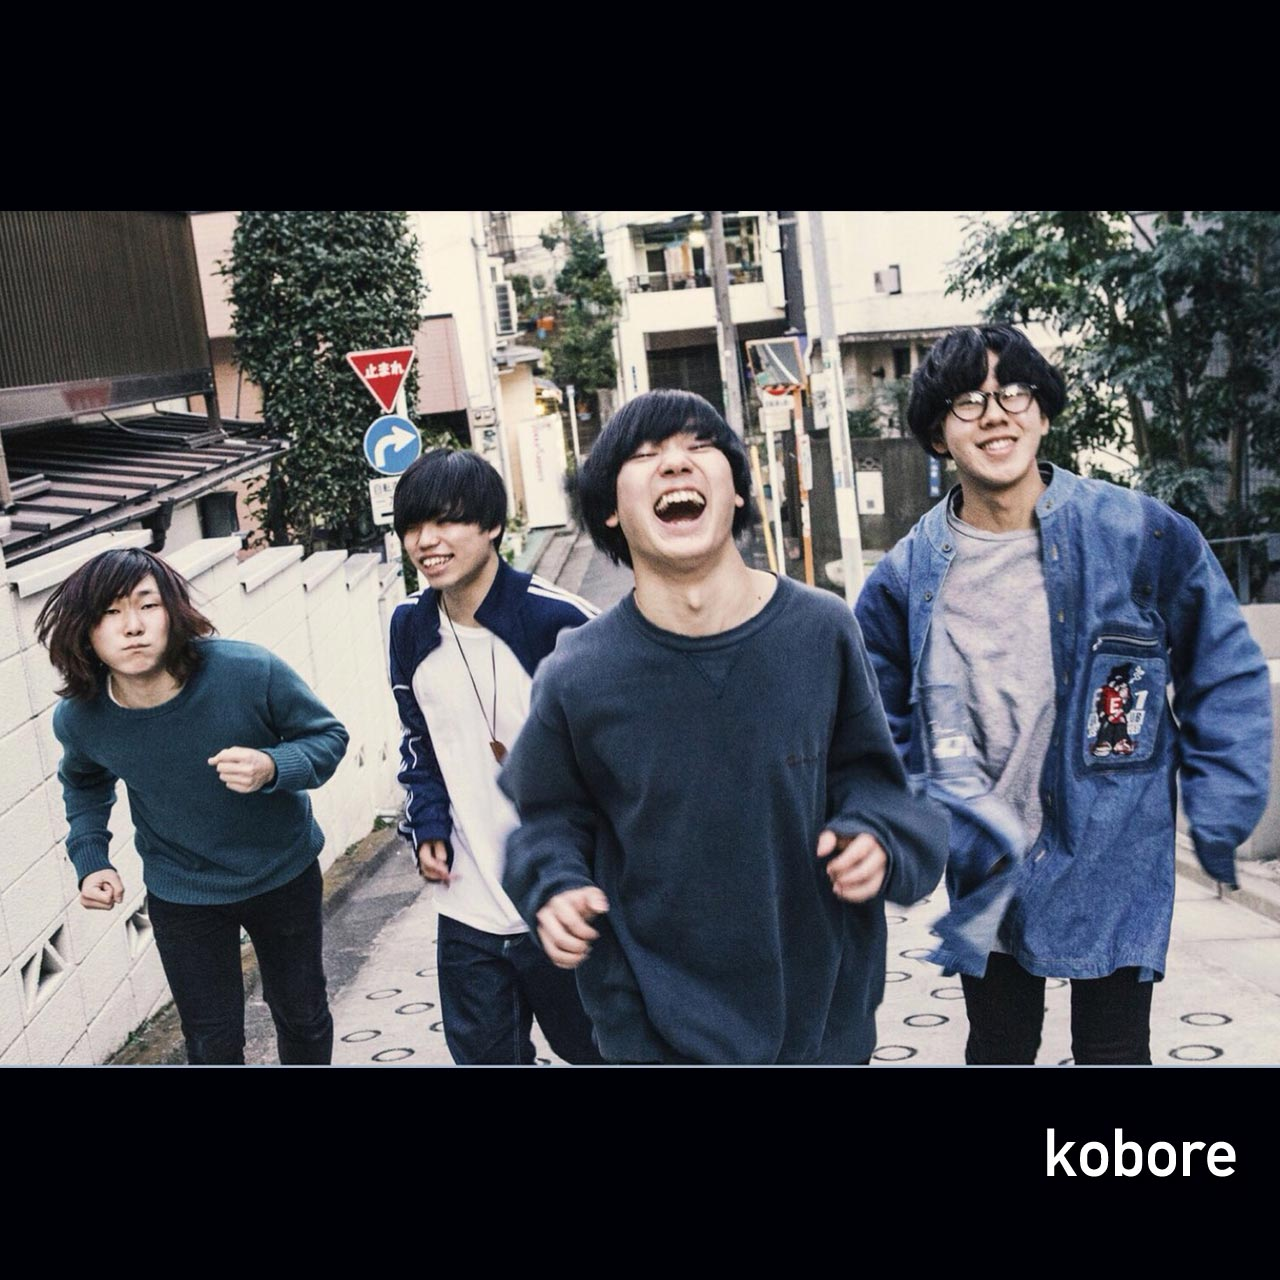 kobore - '爆音を鳴らせTOUR2018'